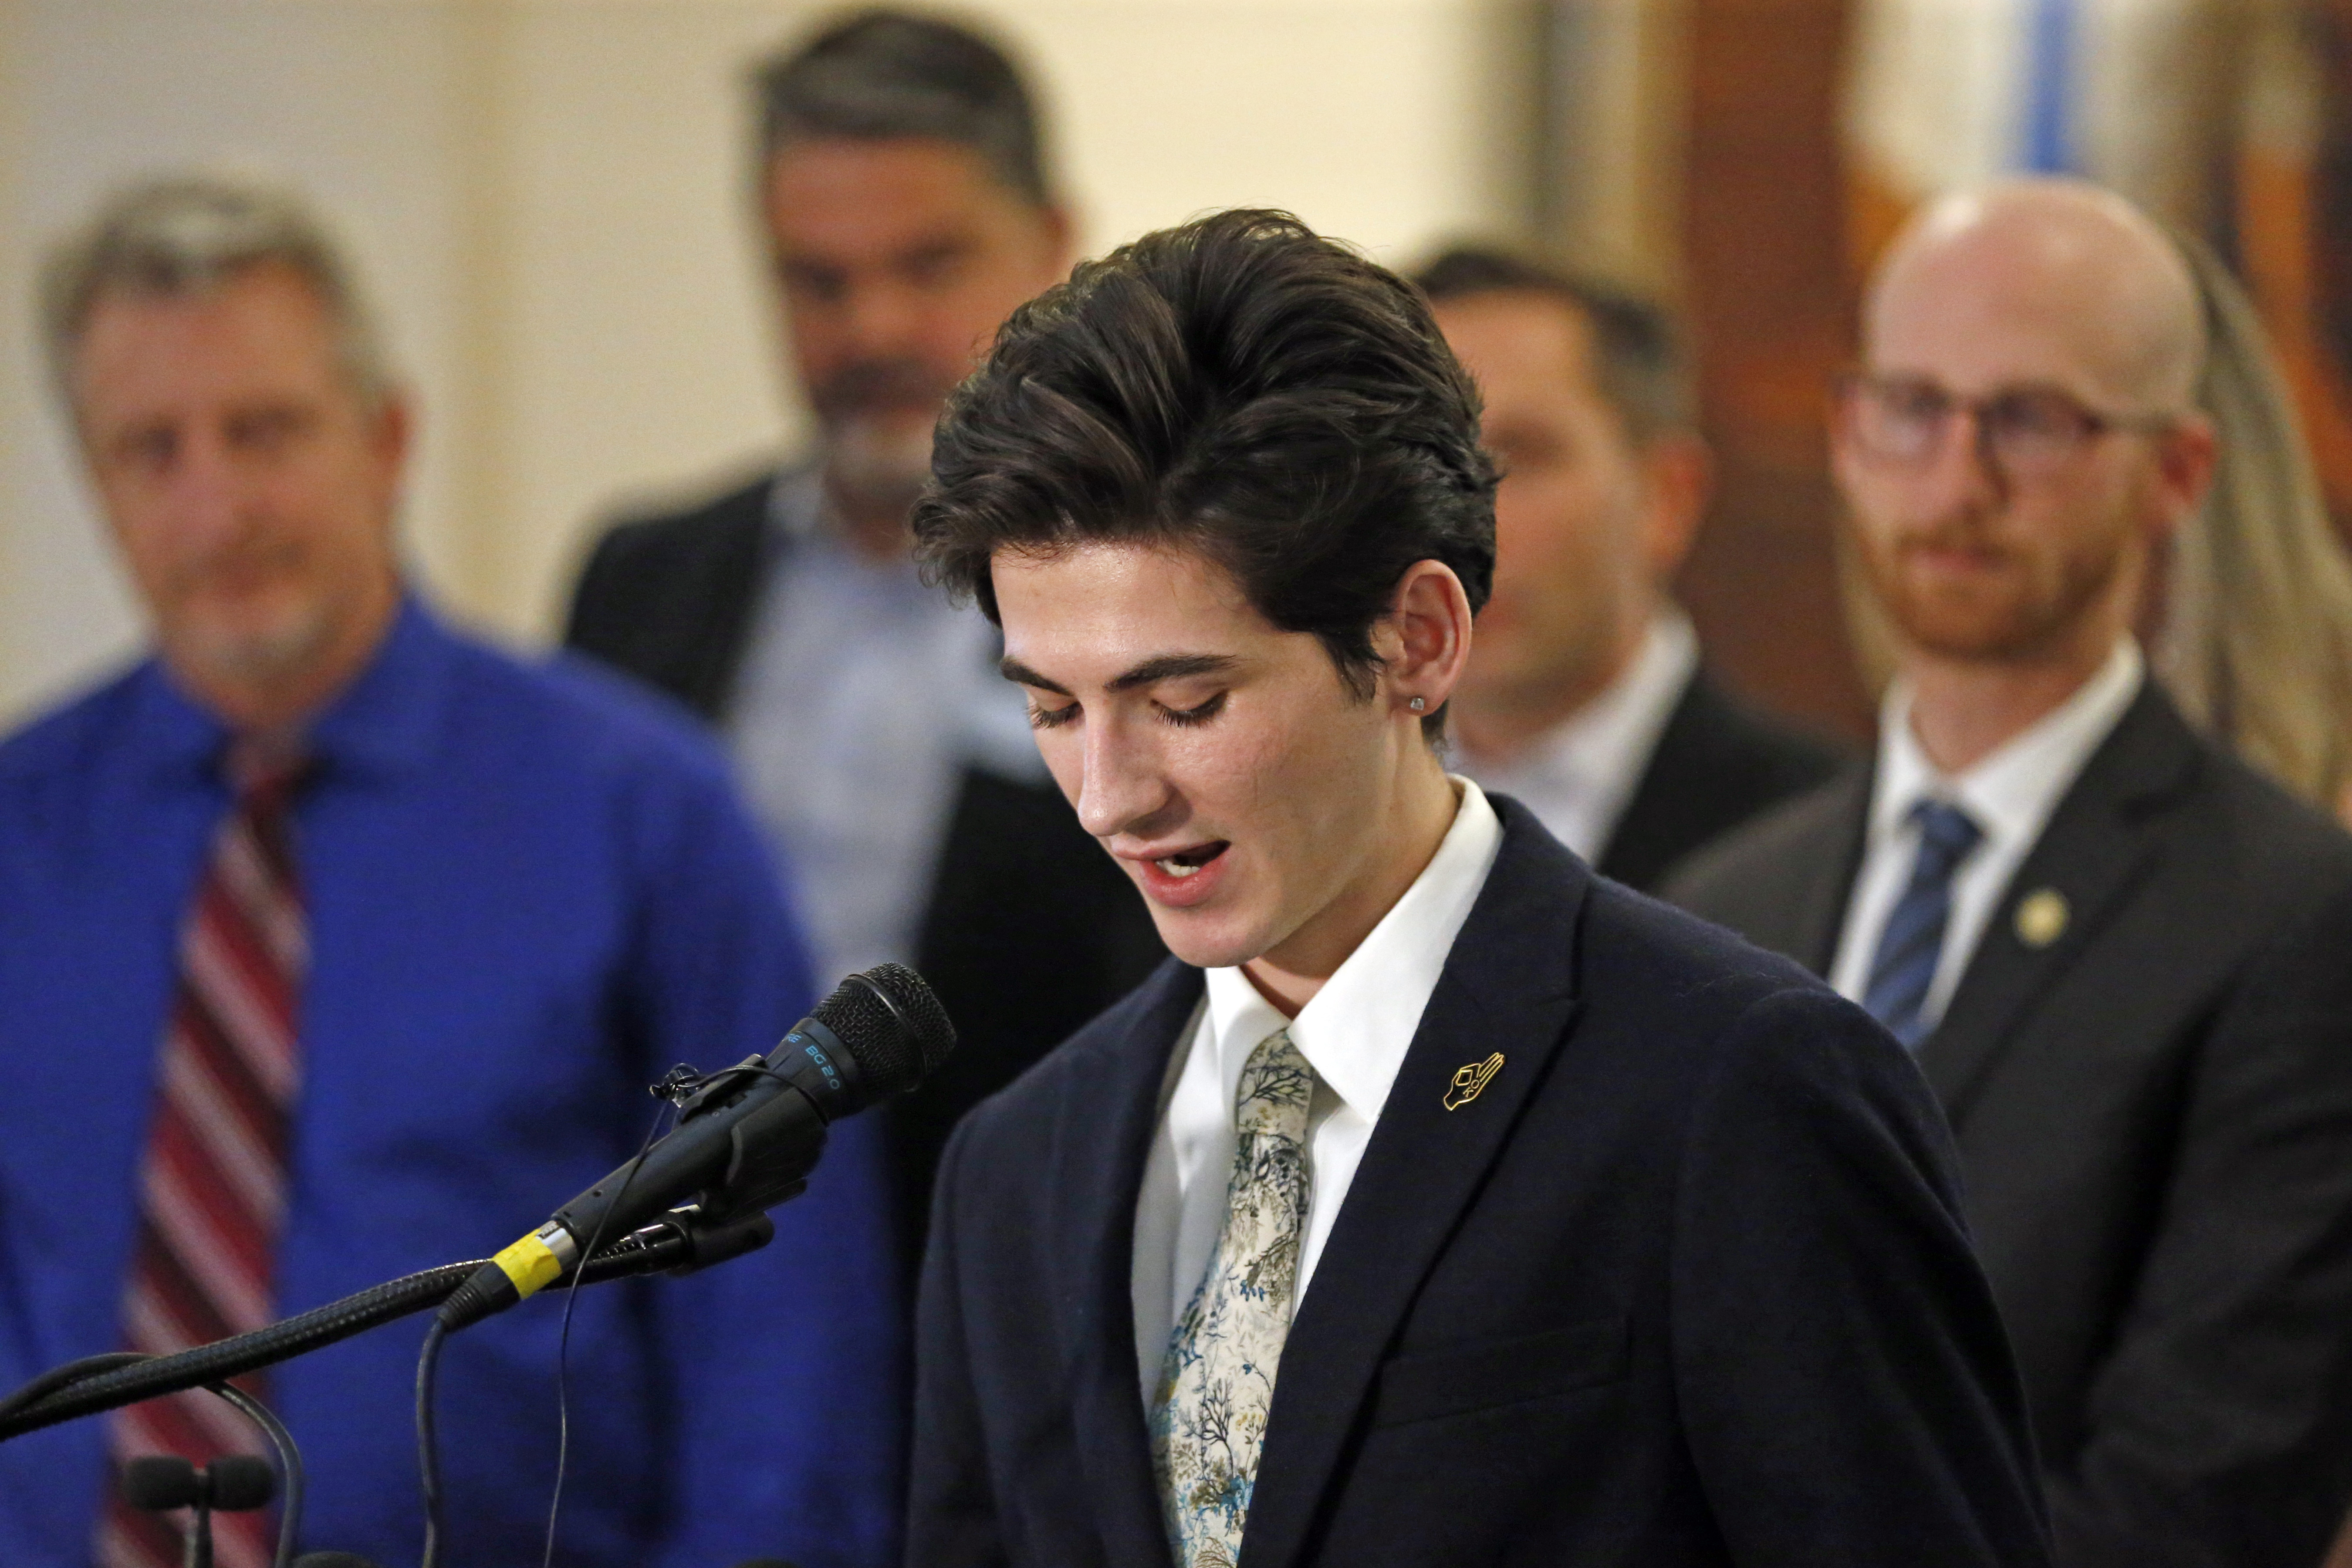 Nathan Dalley speaks during a news conference at the Utah State Capitol Thursday, Feb. 21, 2019, in Salt Lake City. Two Republican lawmakers proposed a ban on gay conversion therapy for minors in conservative Utah on Thursday, a plan that's been hailed as a milestone by advocates and won't be opposed by the influential Mormon church. Those who have been through conversion therapy, like 19-year-old Dalley, say it leaves them depressed and can lead to suicide attempts. (AP Photo/Rick Bowmer)